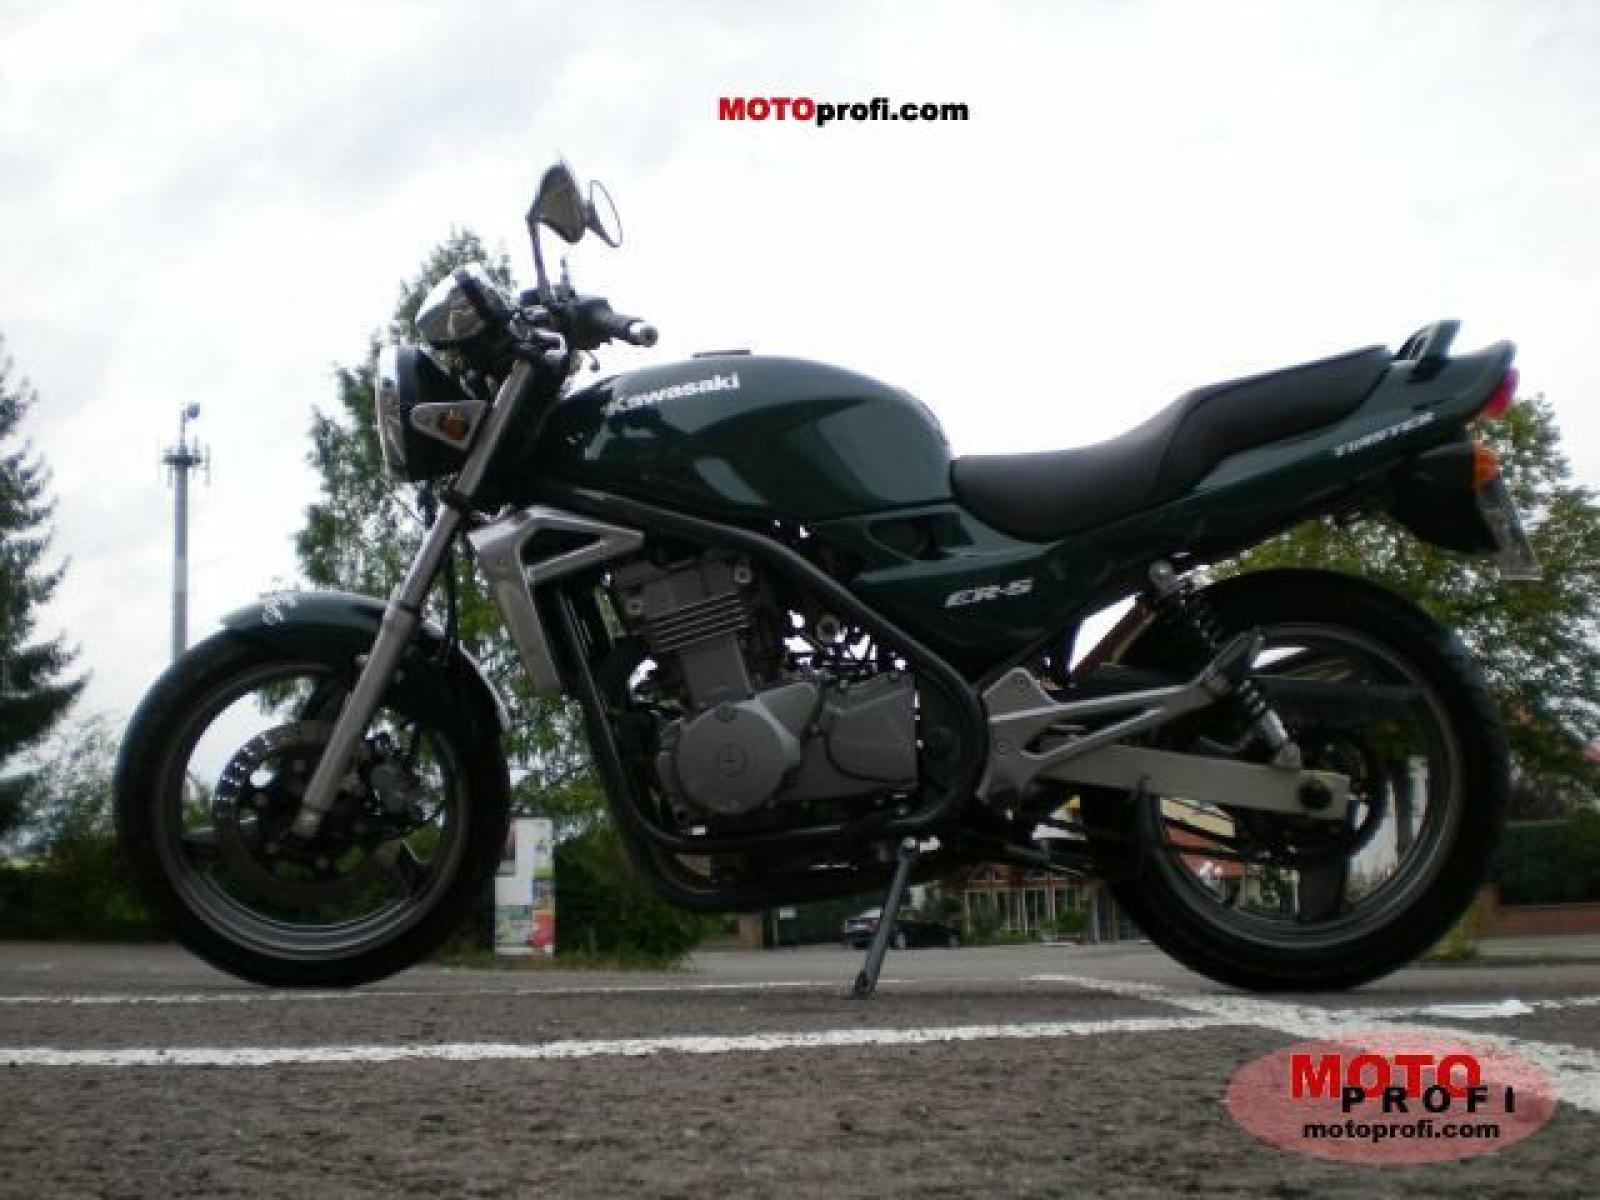 2001 kawasaki er 5 twister moto zombdrive com. Black Bedroom Furniture Sets. Home Design Ideas